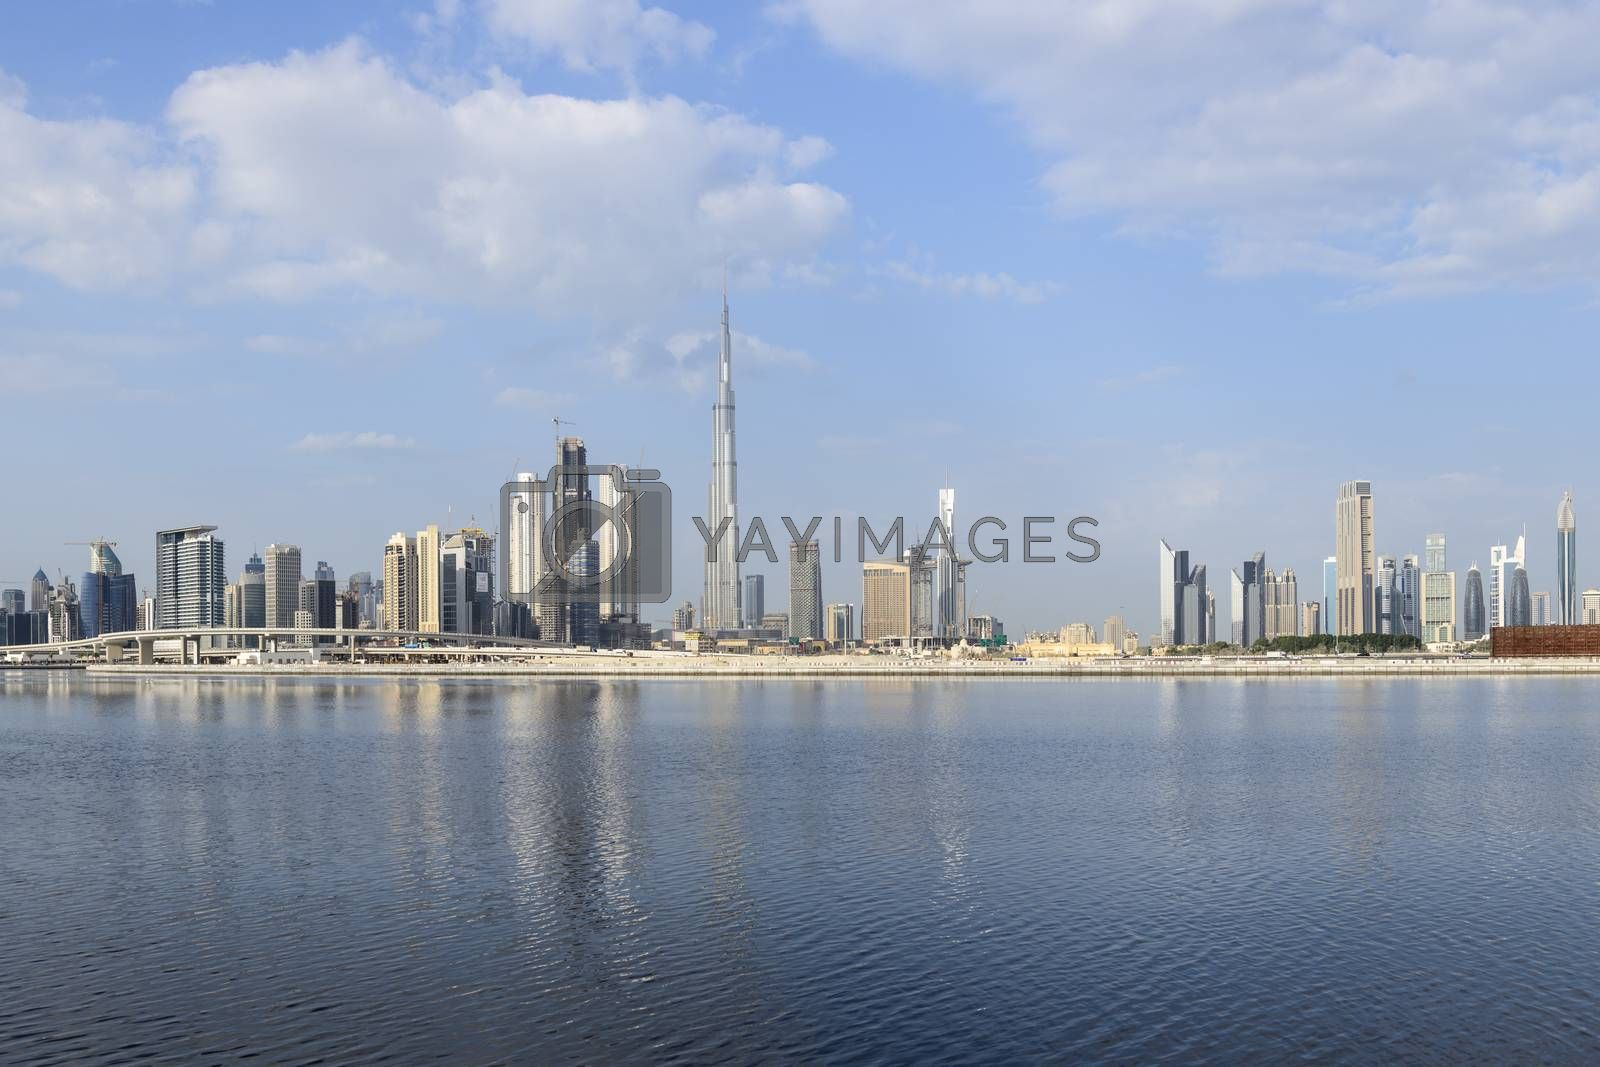 Skyline of Dubai and the iconic Burj Khalifa skyscraper with a partly cloudy sky and winds